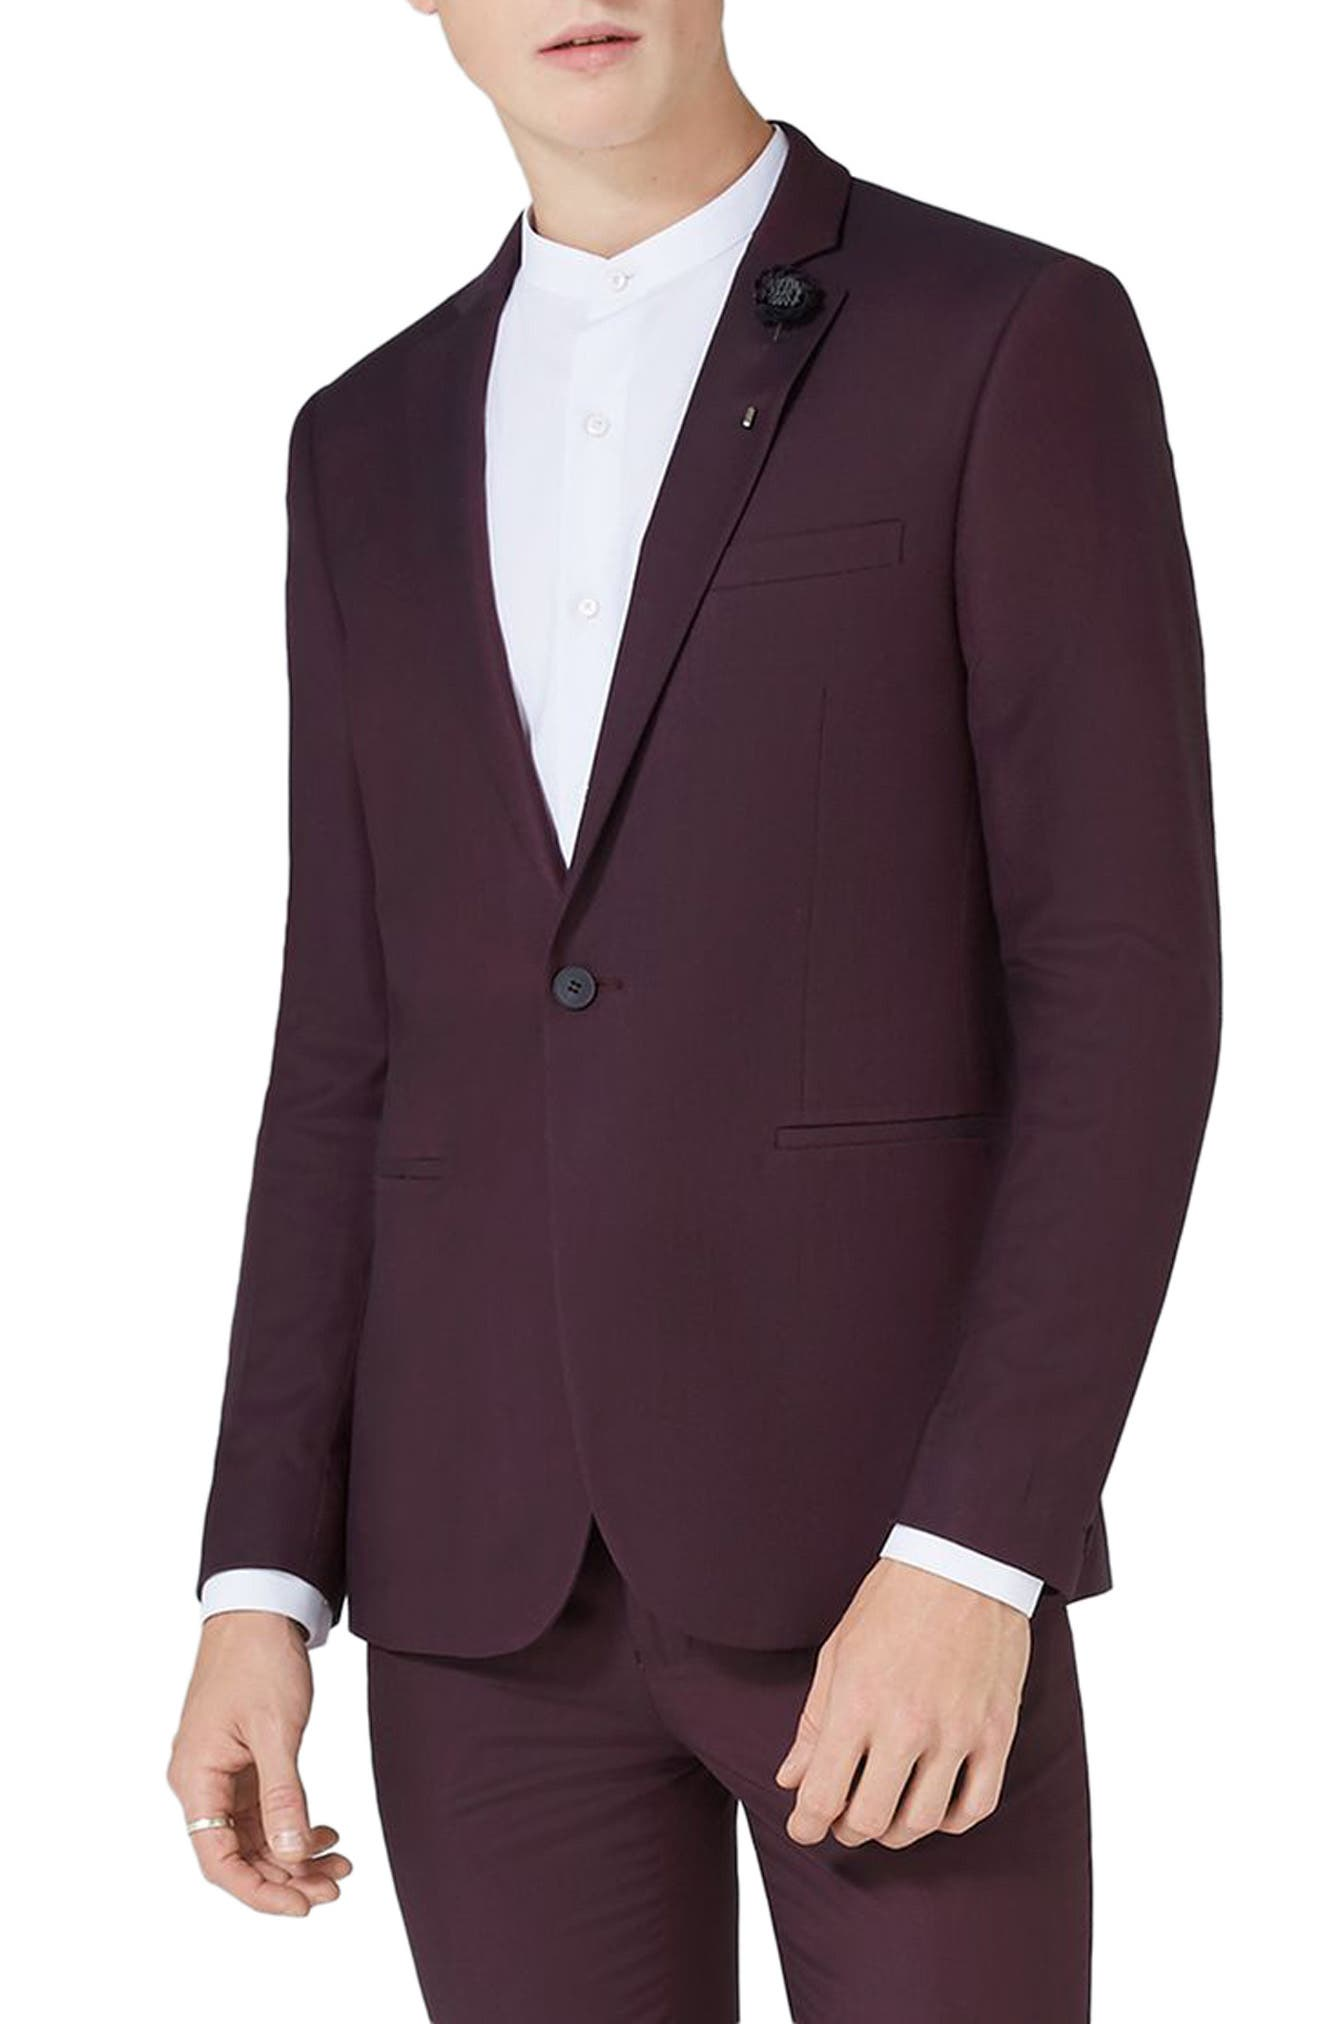 Skinny Fit Plum One-Button Suit Jacket,                         Main,                         color, Plum